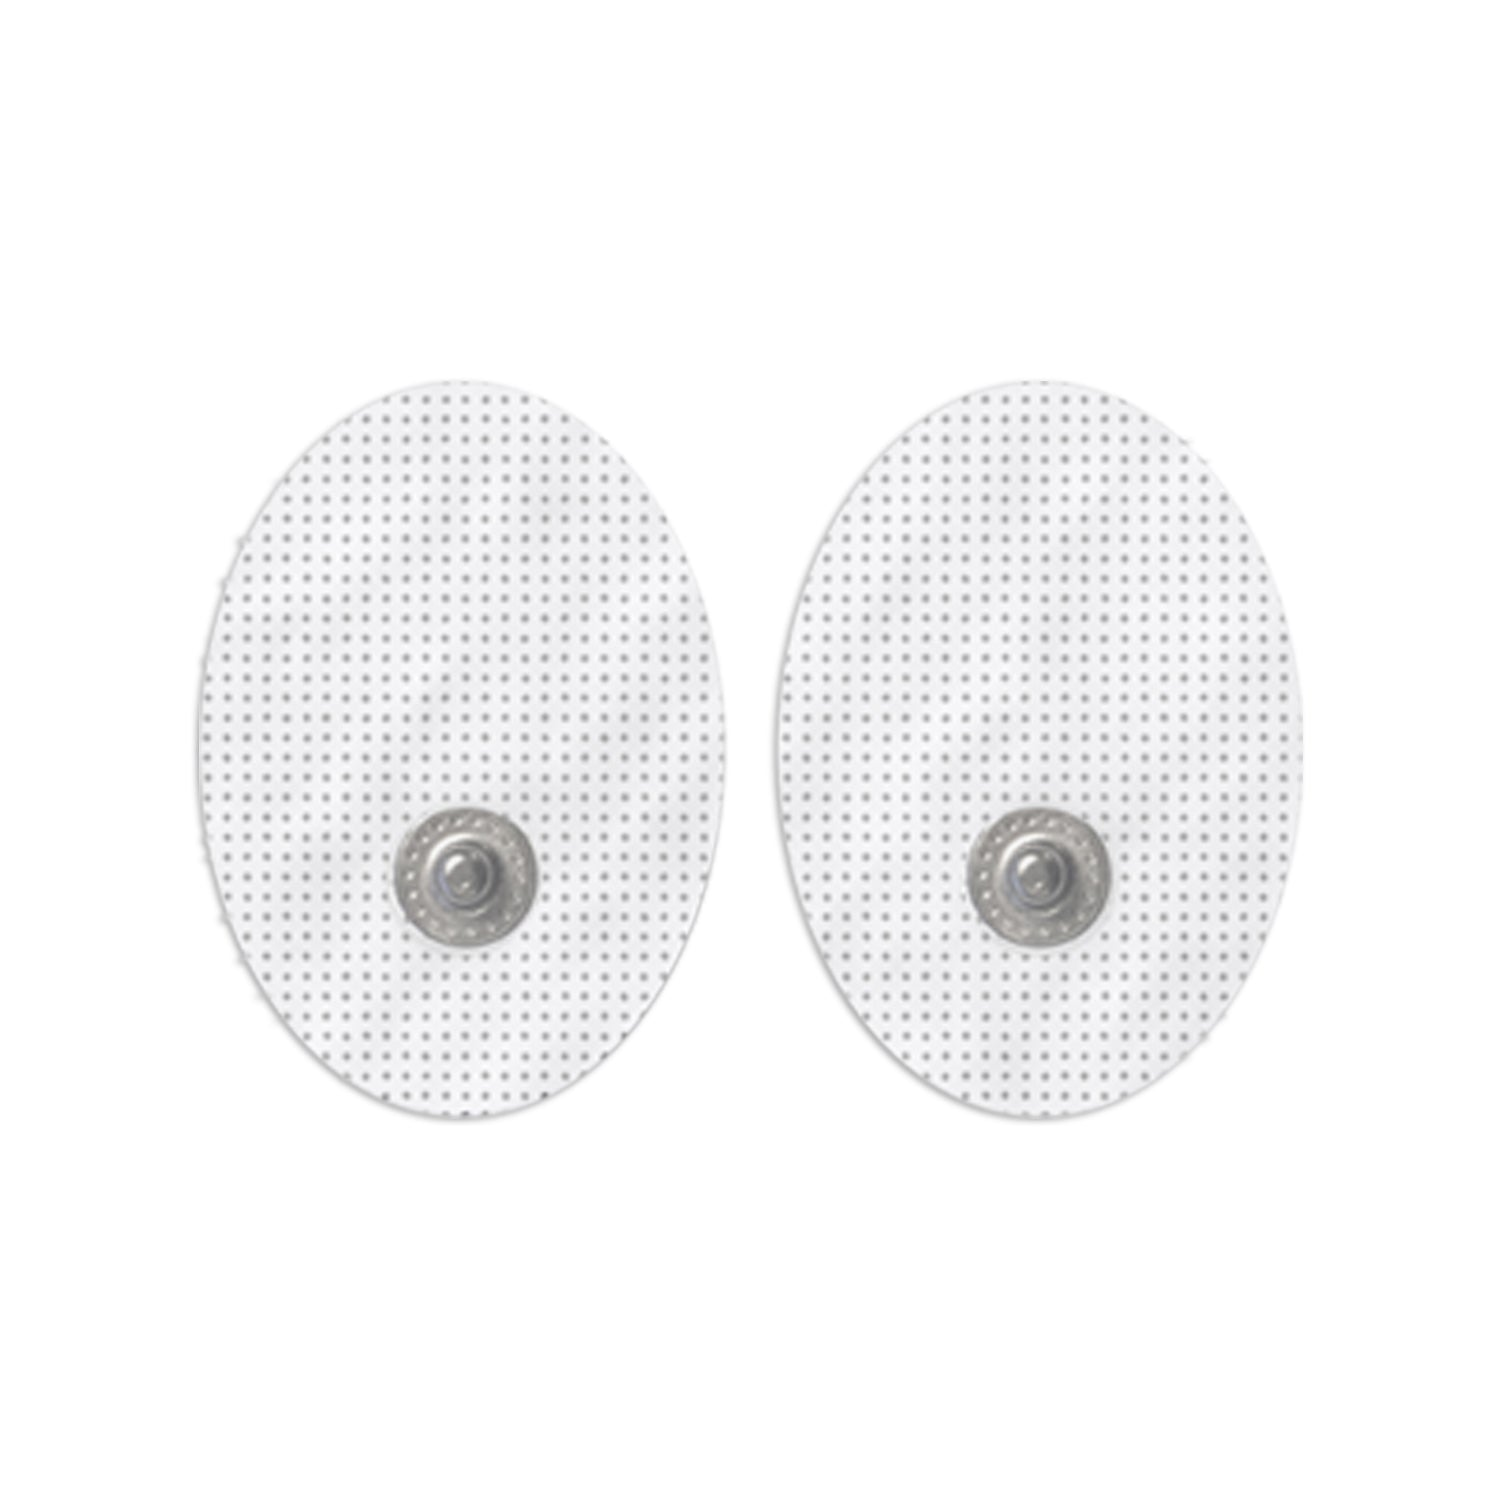 Pair of Snap-On Small Oval-Shaped Pads - HealthmateForever